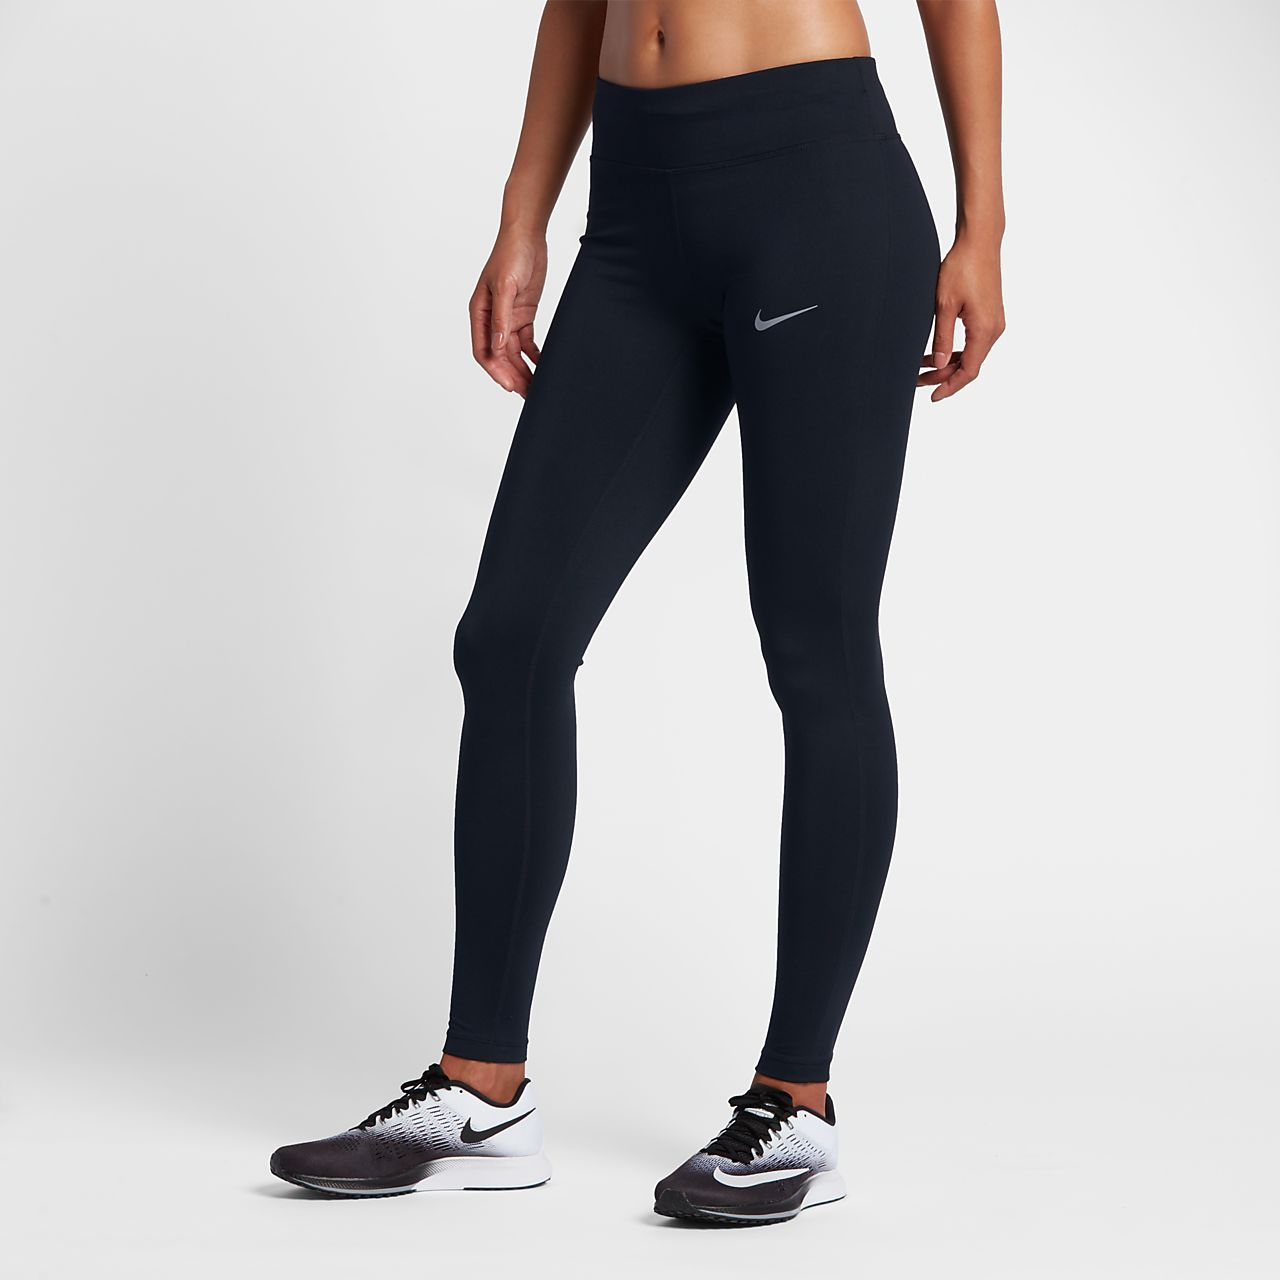 Nike Essential Women's Mid-Rise Running Tights